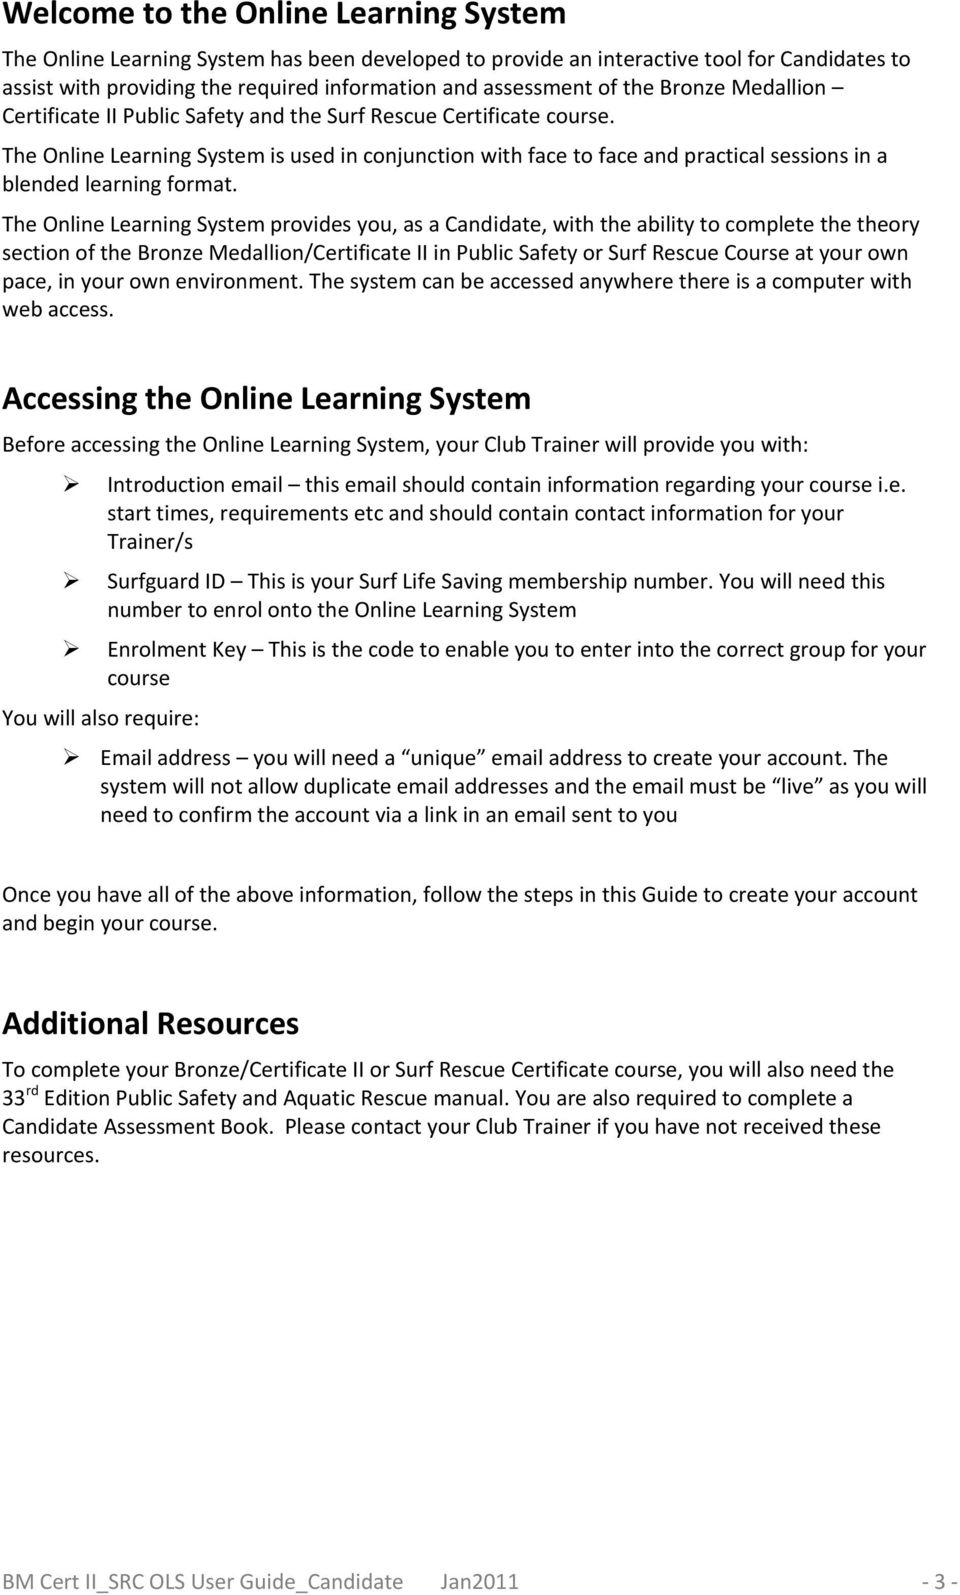 The Online Learning System is used in conjunction with face to face and practical sessions in a blended learning format.